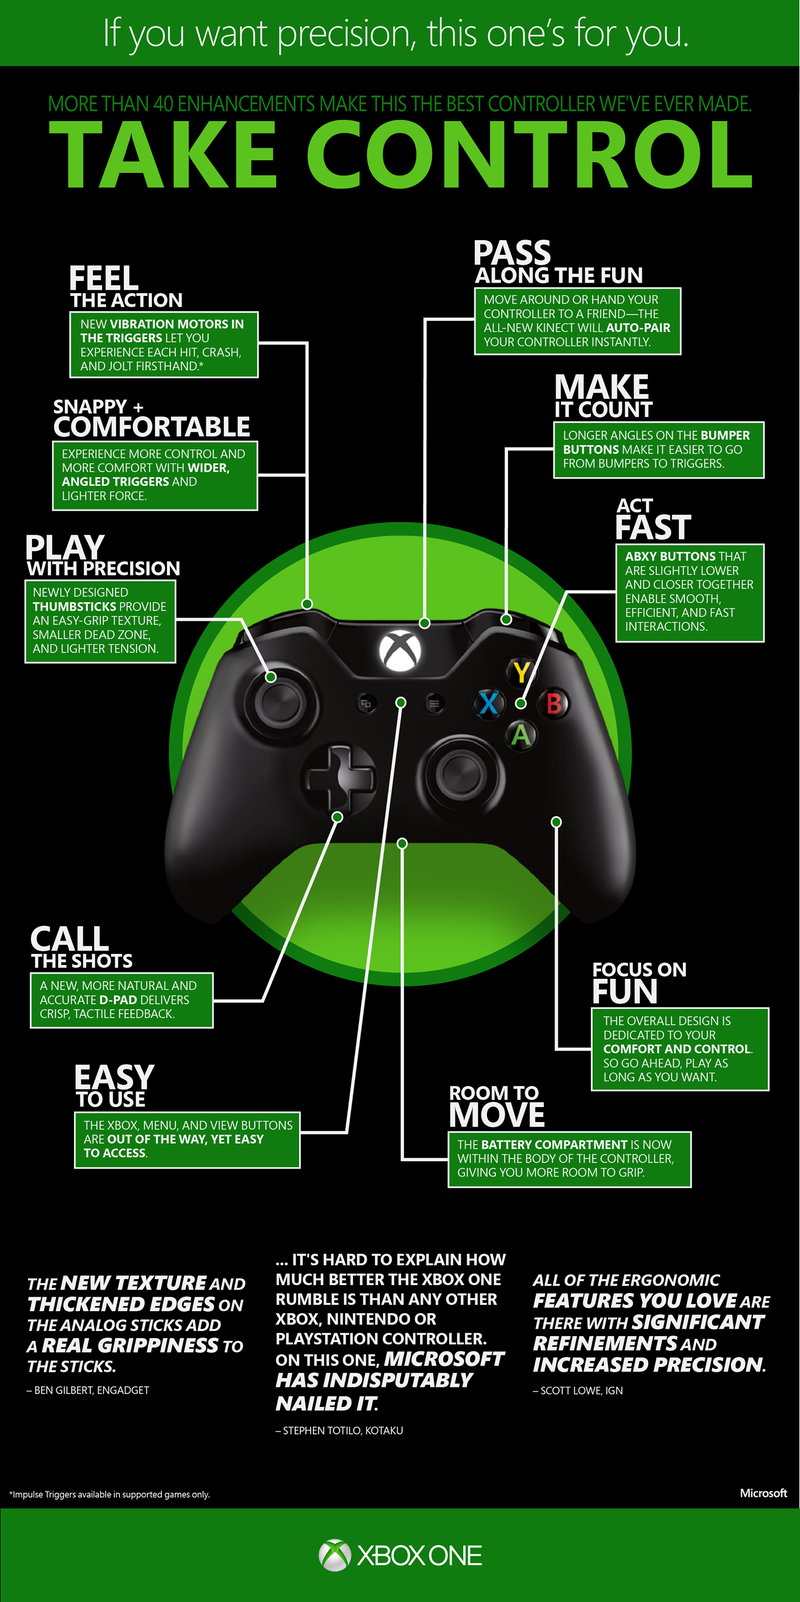 Take a Guided Tour of the Xbox One's Controller